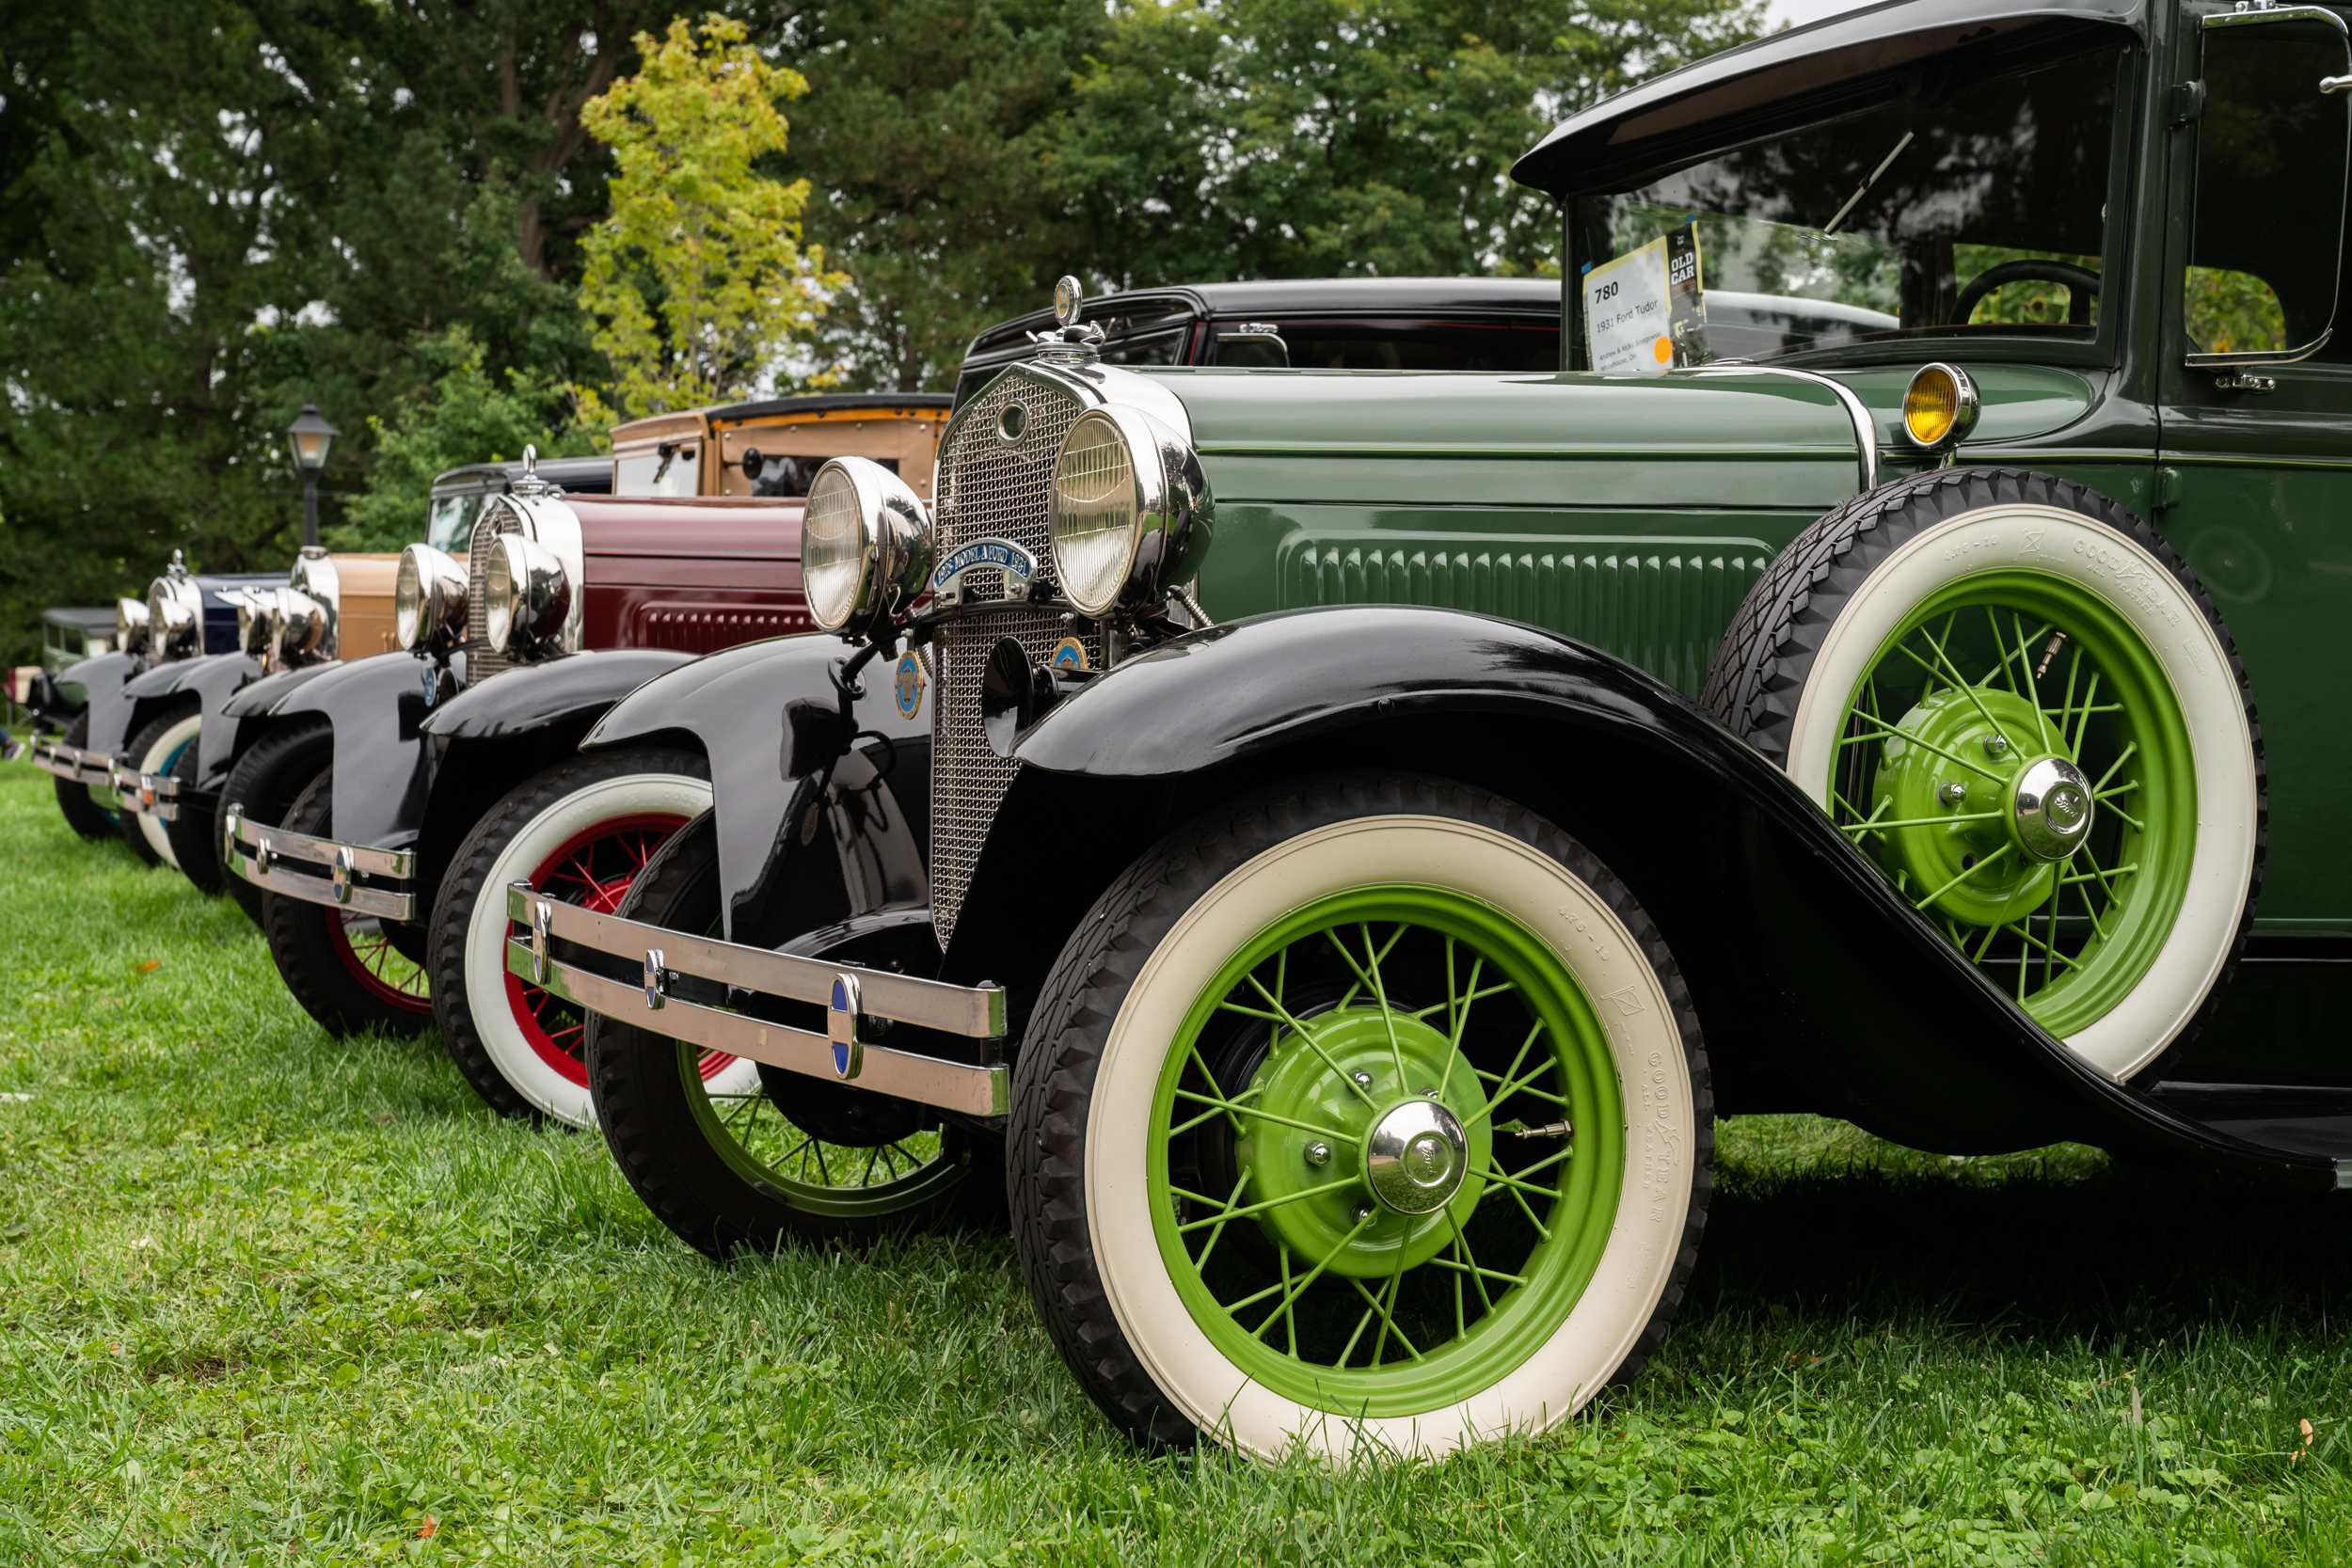 Row of antique vehicles parked on green grass